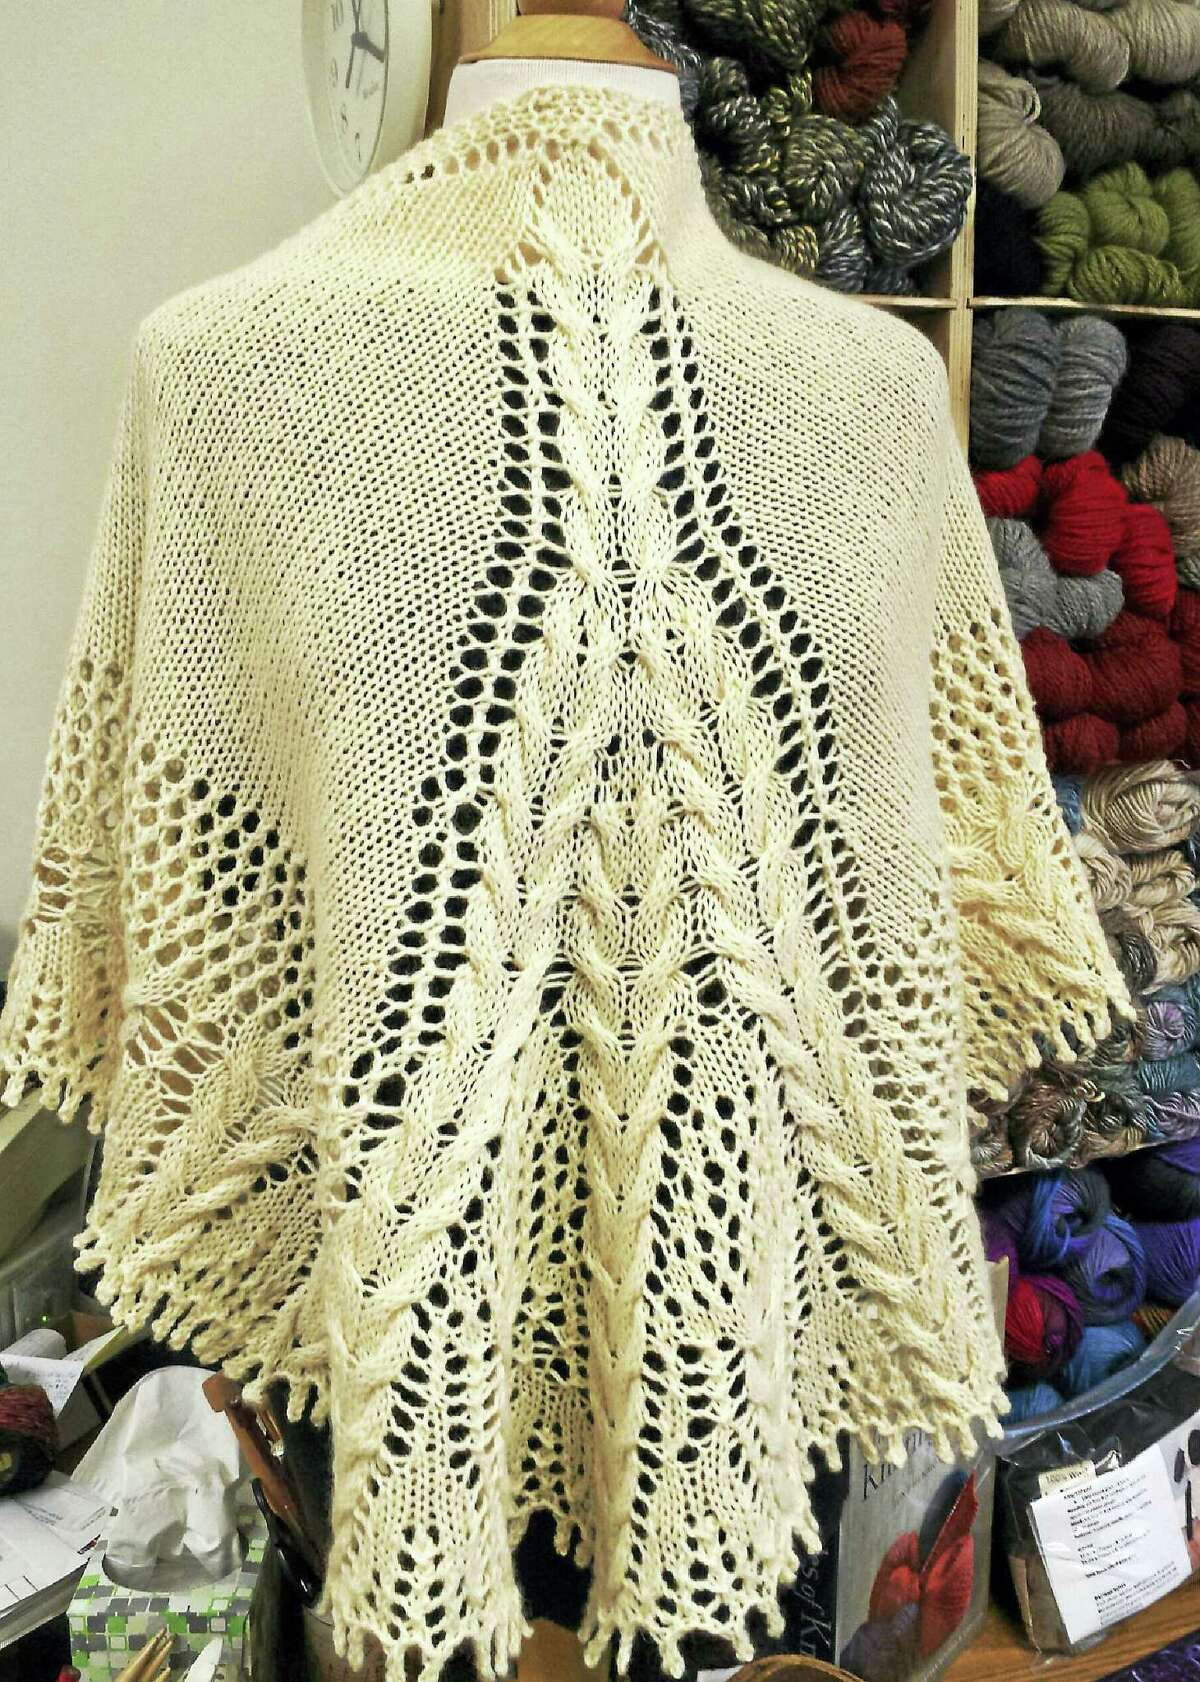 A shawl knit-along will be held Sunday at In Sheep's Clothing, 10 Water St., Torrington. Participants can learn to make a shawl like this one.